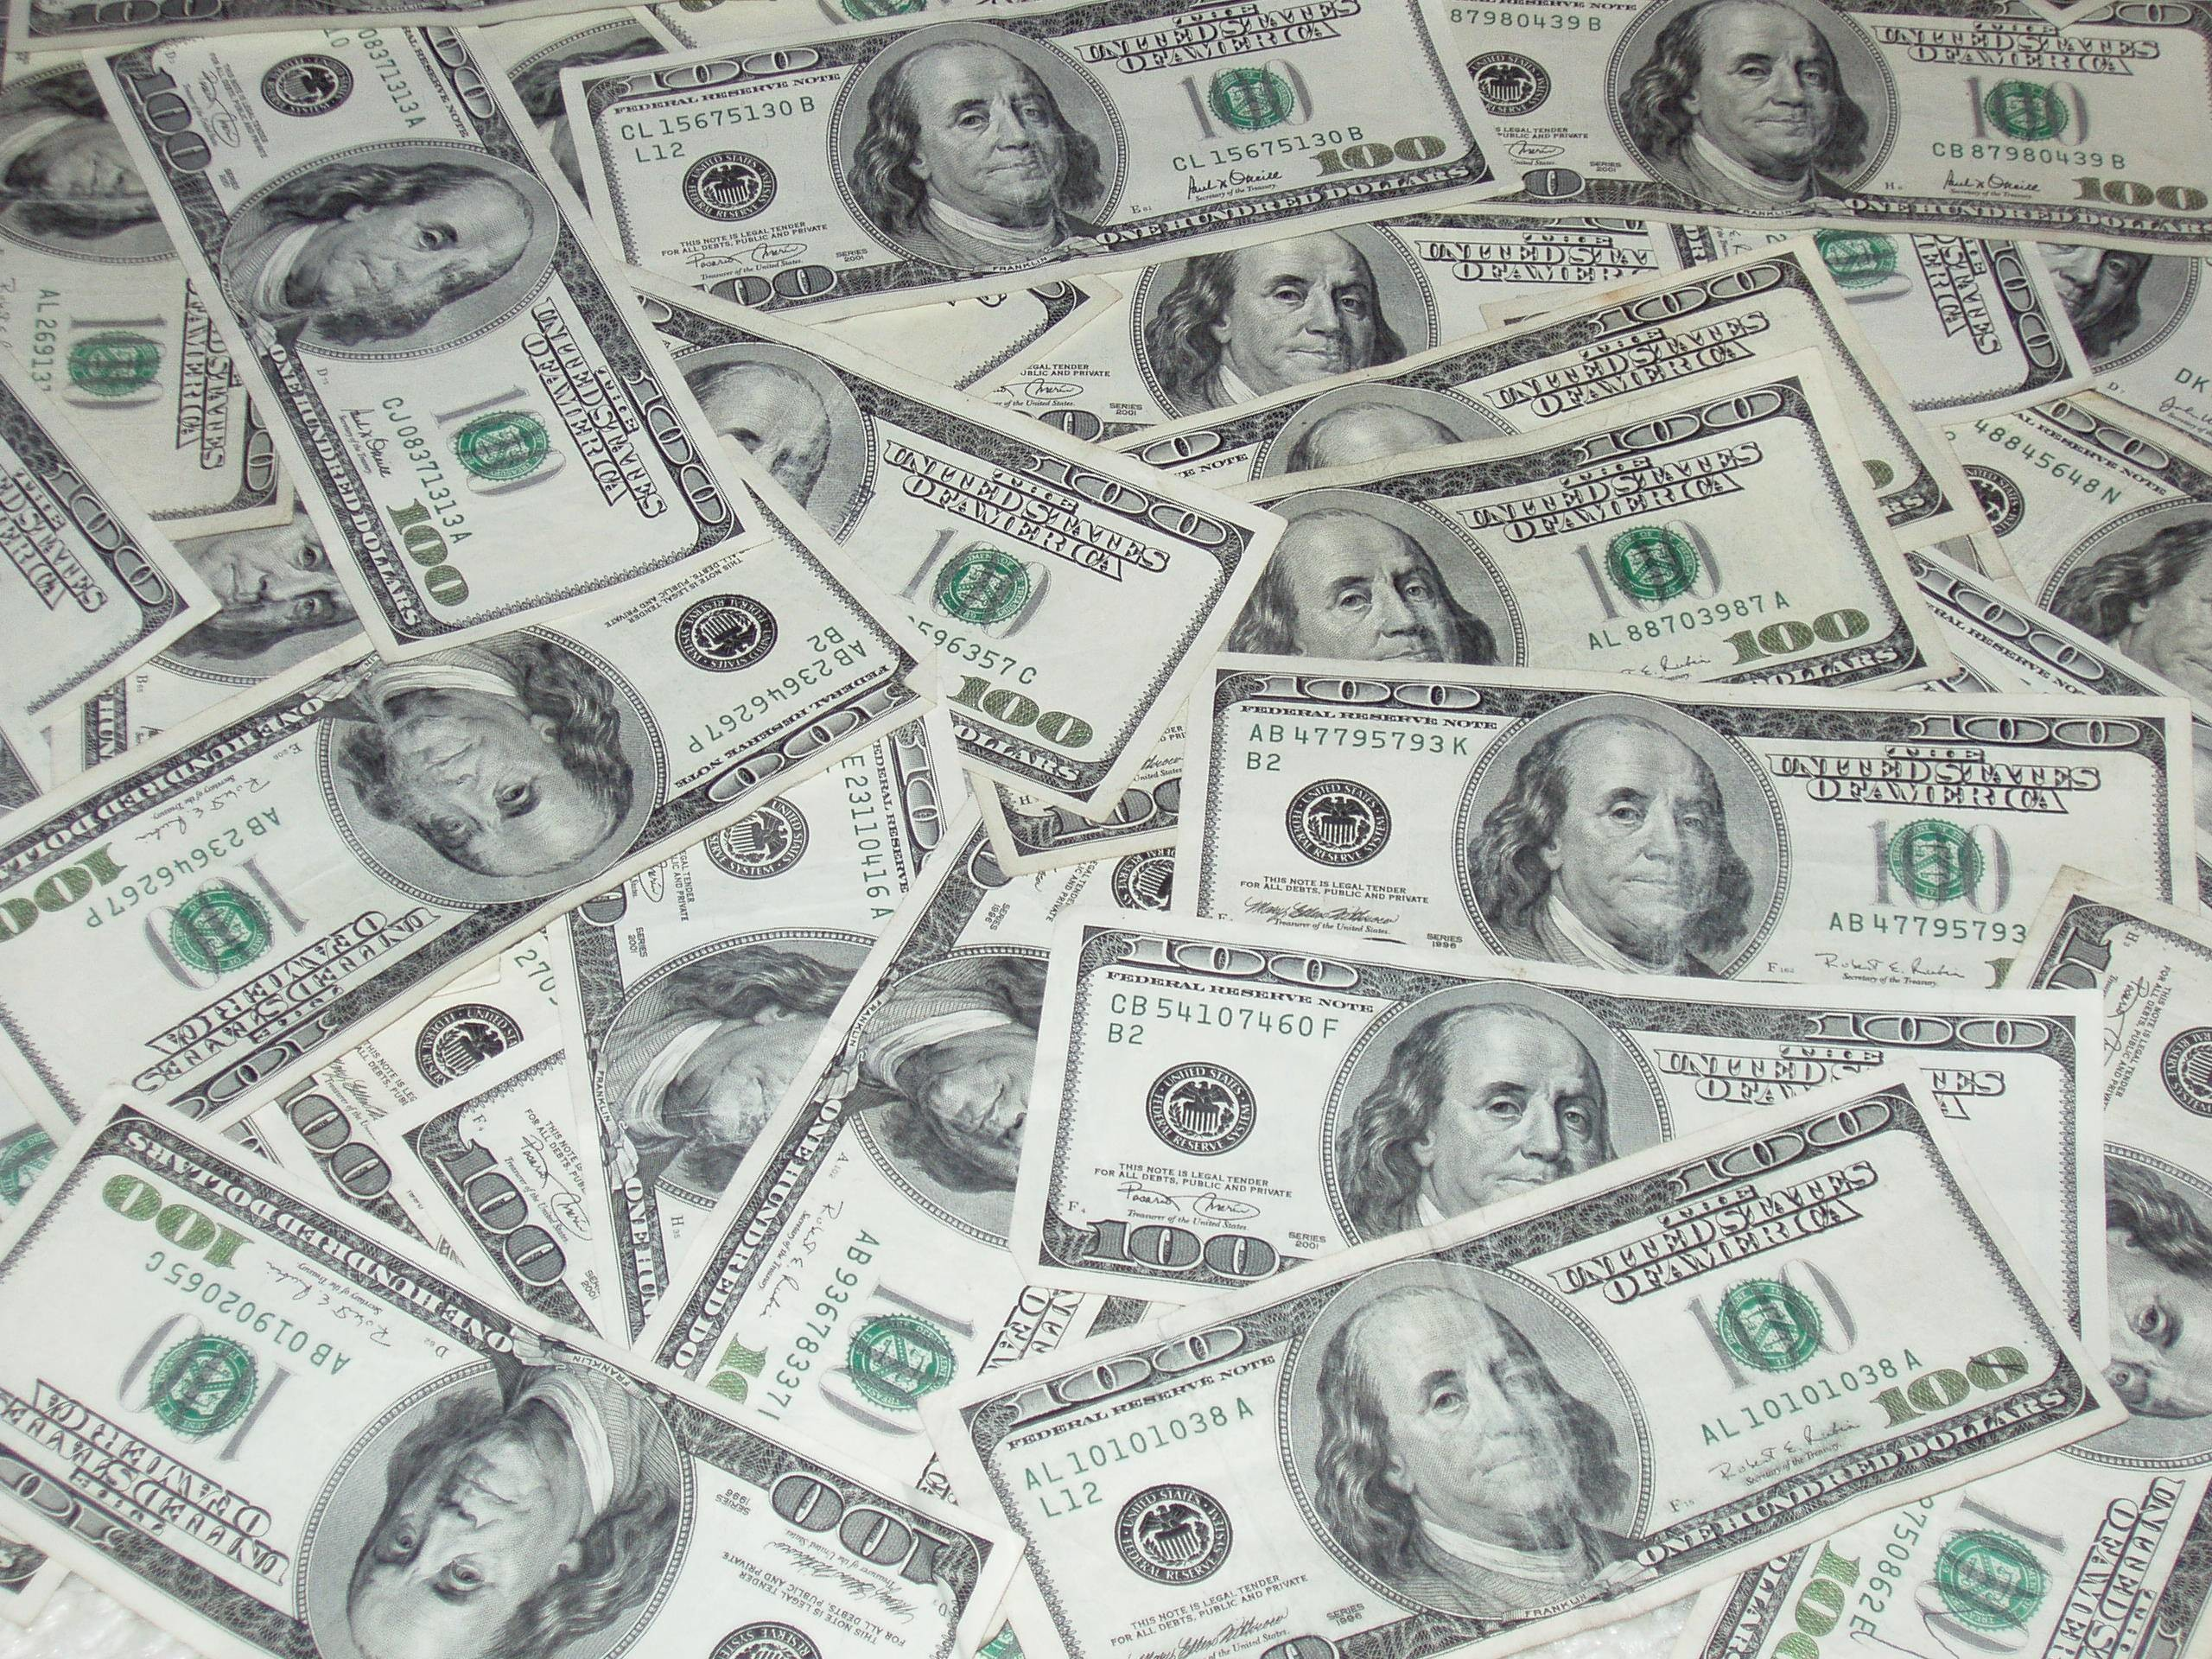 2560x1920 Pix For > Benjamin Franklin 100 Dollar Bill Wallpaper